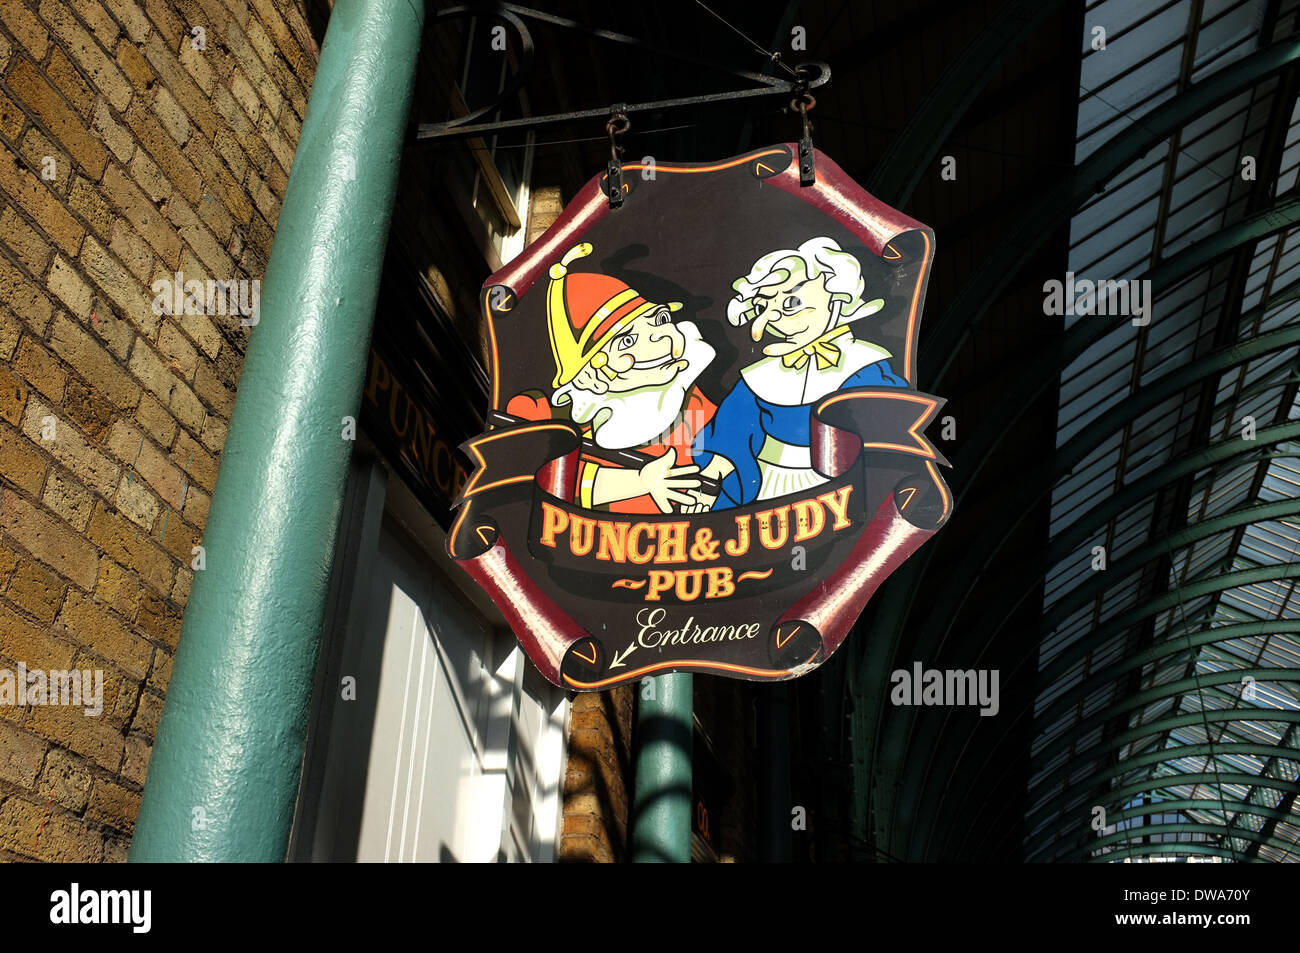 punch and judy pub covent garden market london wc2 uk 2014 - Stock Image